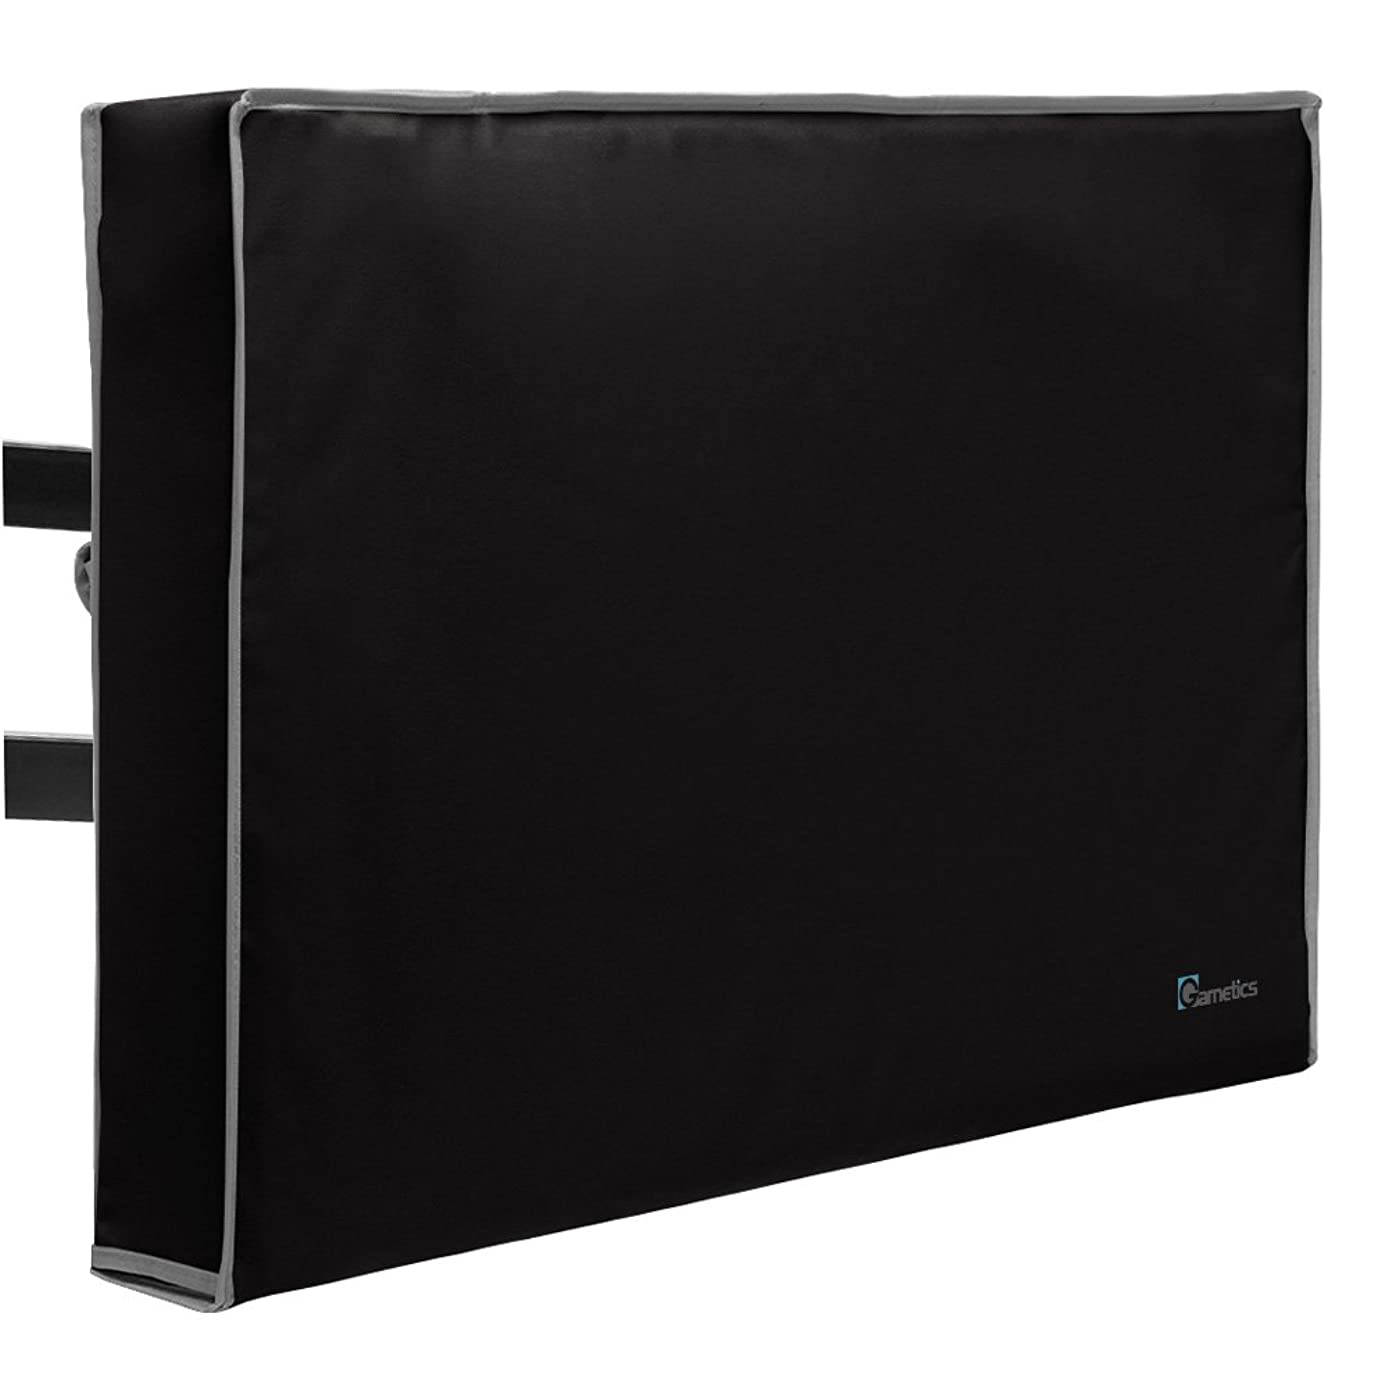 Garnetics Outdoor TV Cover 48